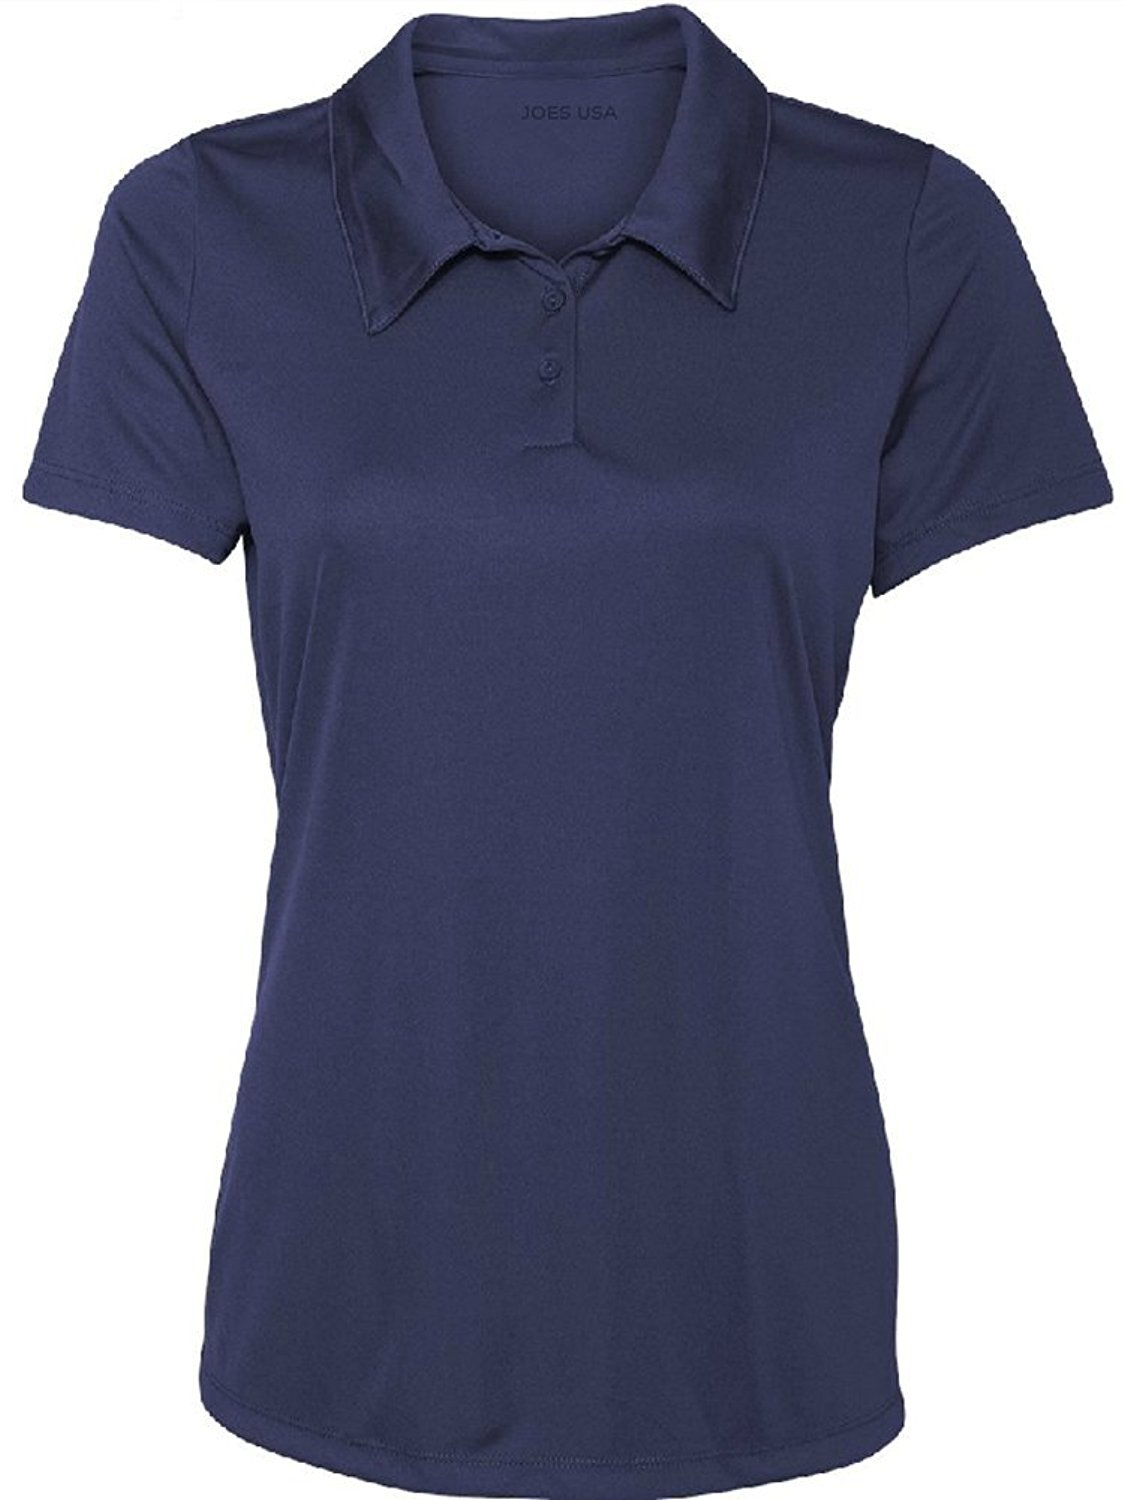 66fdca39 Get Quotations · Women's Dri-Equip Golf Polo Shirts 3-Button Golf Polo's in  20 Colors XS